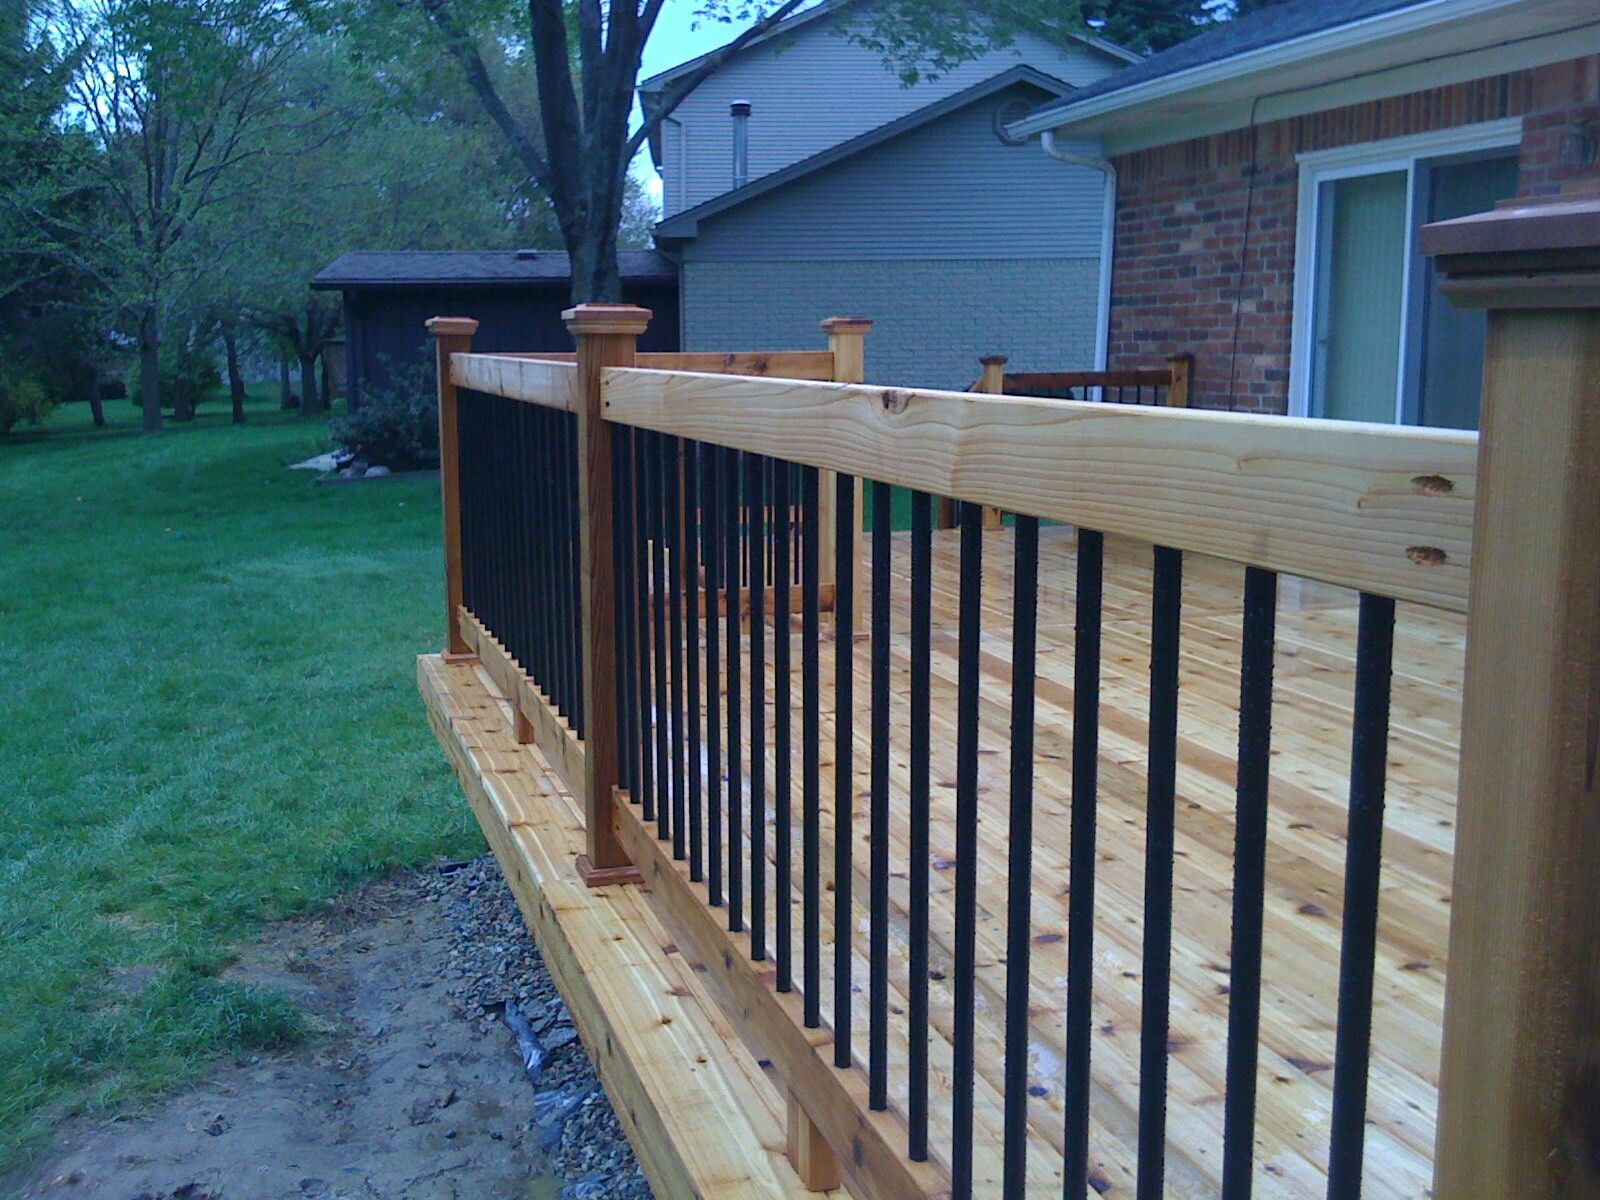 Rebar Railing On Deck Deck Railing Pinterest Rebar